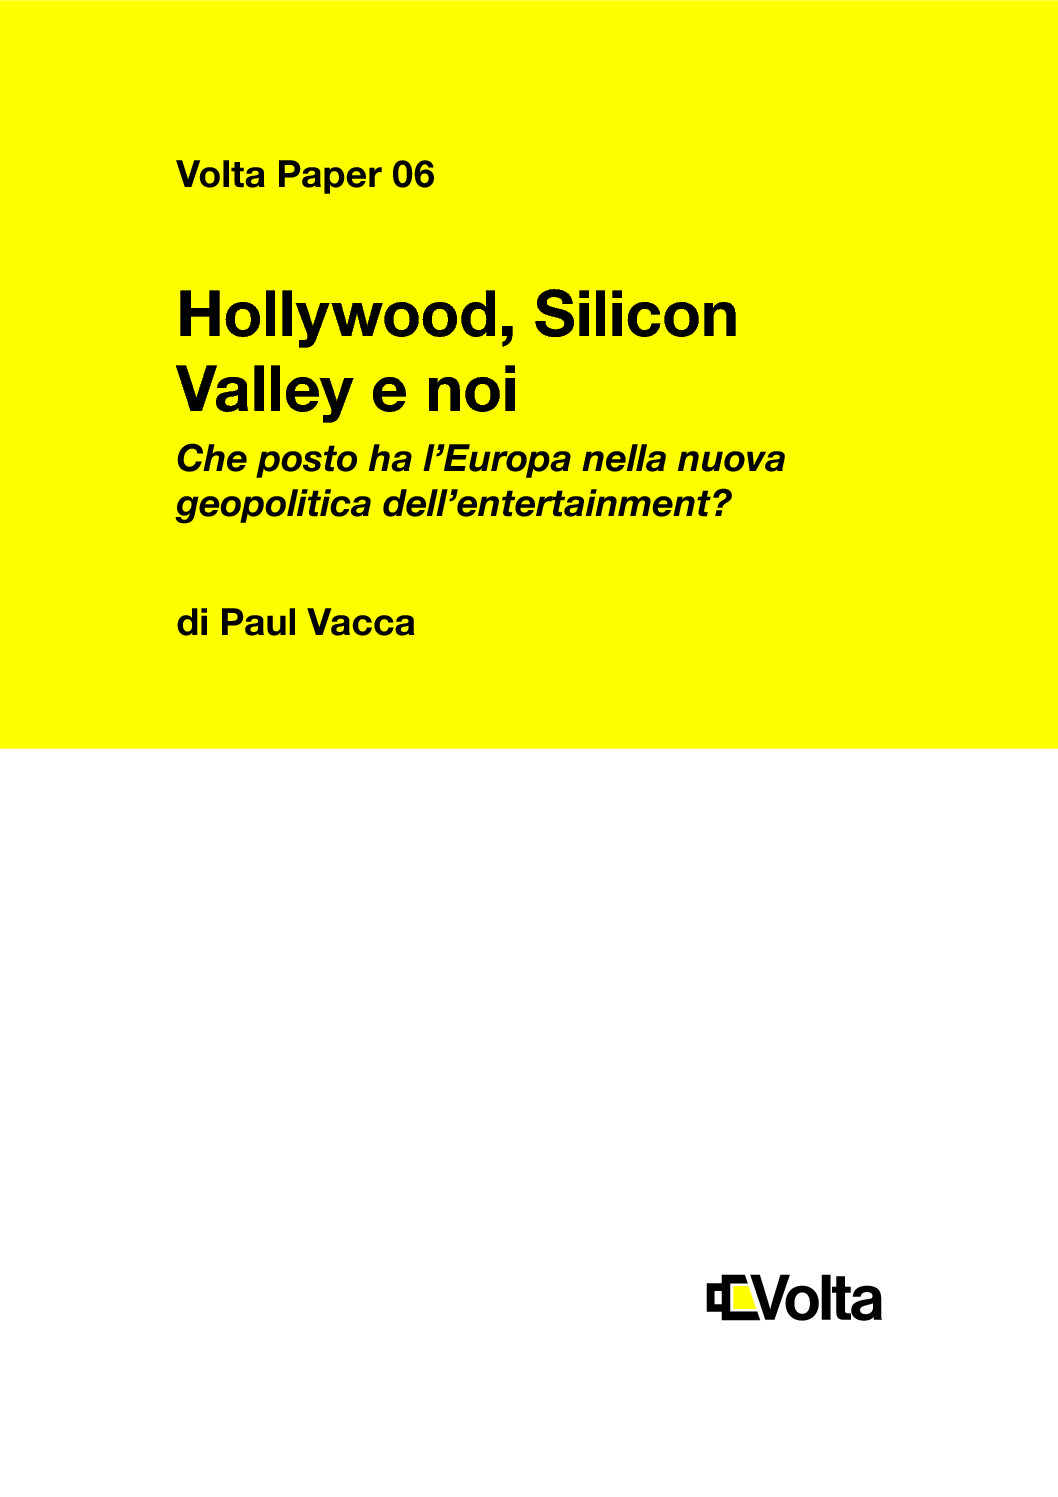 Hollywood, Silicon Valley e noi